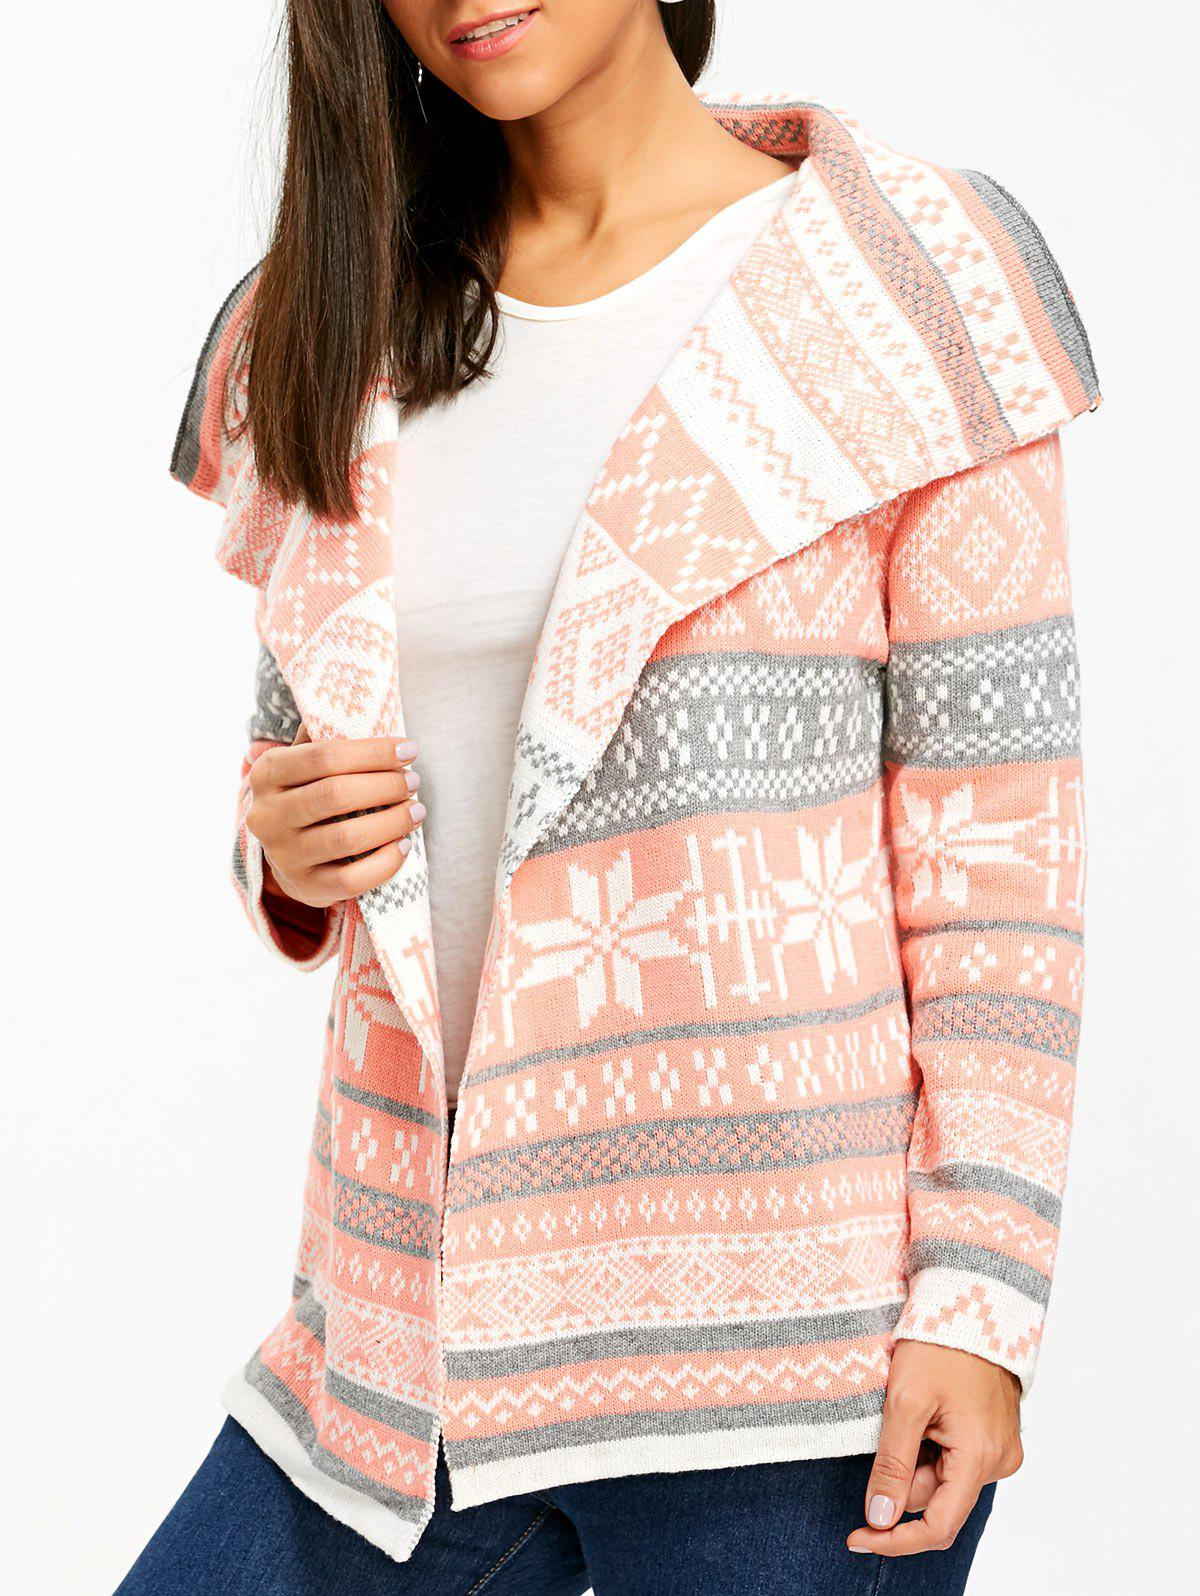 Stylish Turn-Down Collar Long Sleeve Printed Pocket Design Womens CardiganWOMEN<br><br>Size: L; Color: PINK; Type: Cardigans; Material: Acrylic; Sleeve Length: Full; Collar: Turn-down Collar; Style: Fashion; Weight: 0.241kg; Package Contents: 1 x Cardigan;